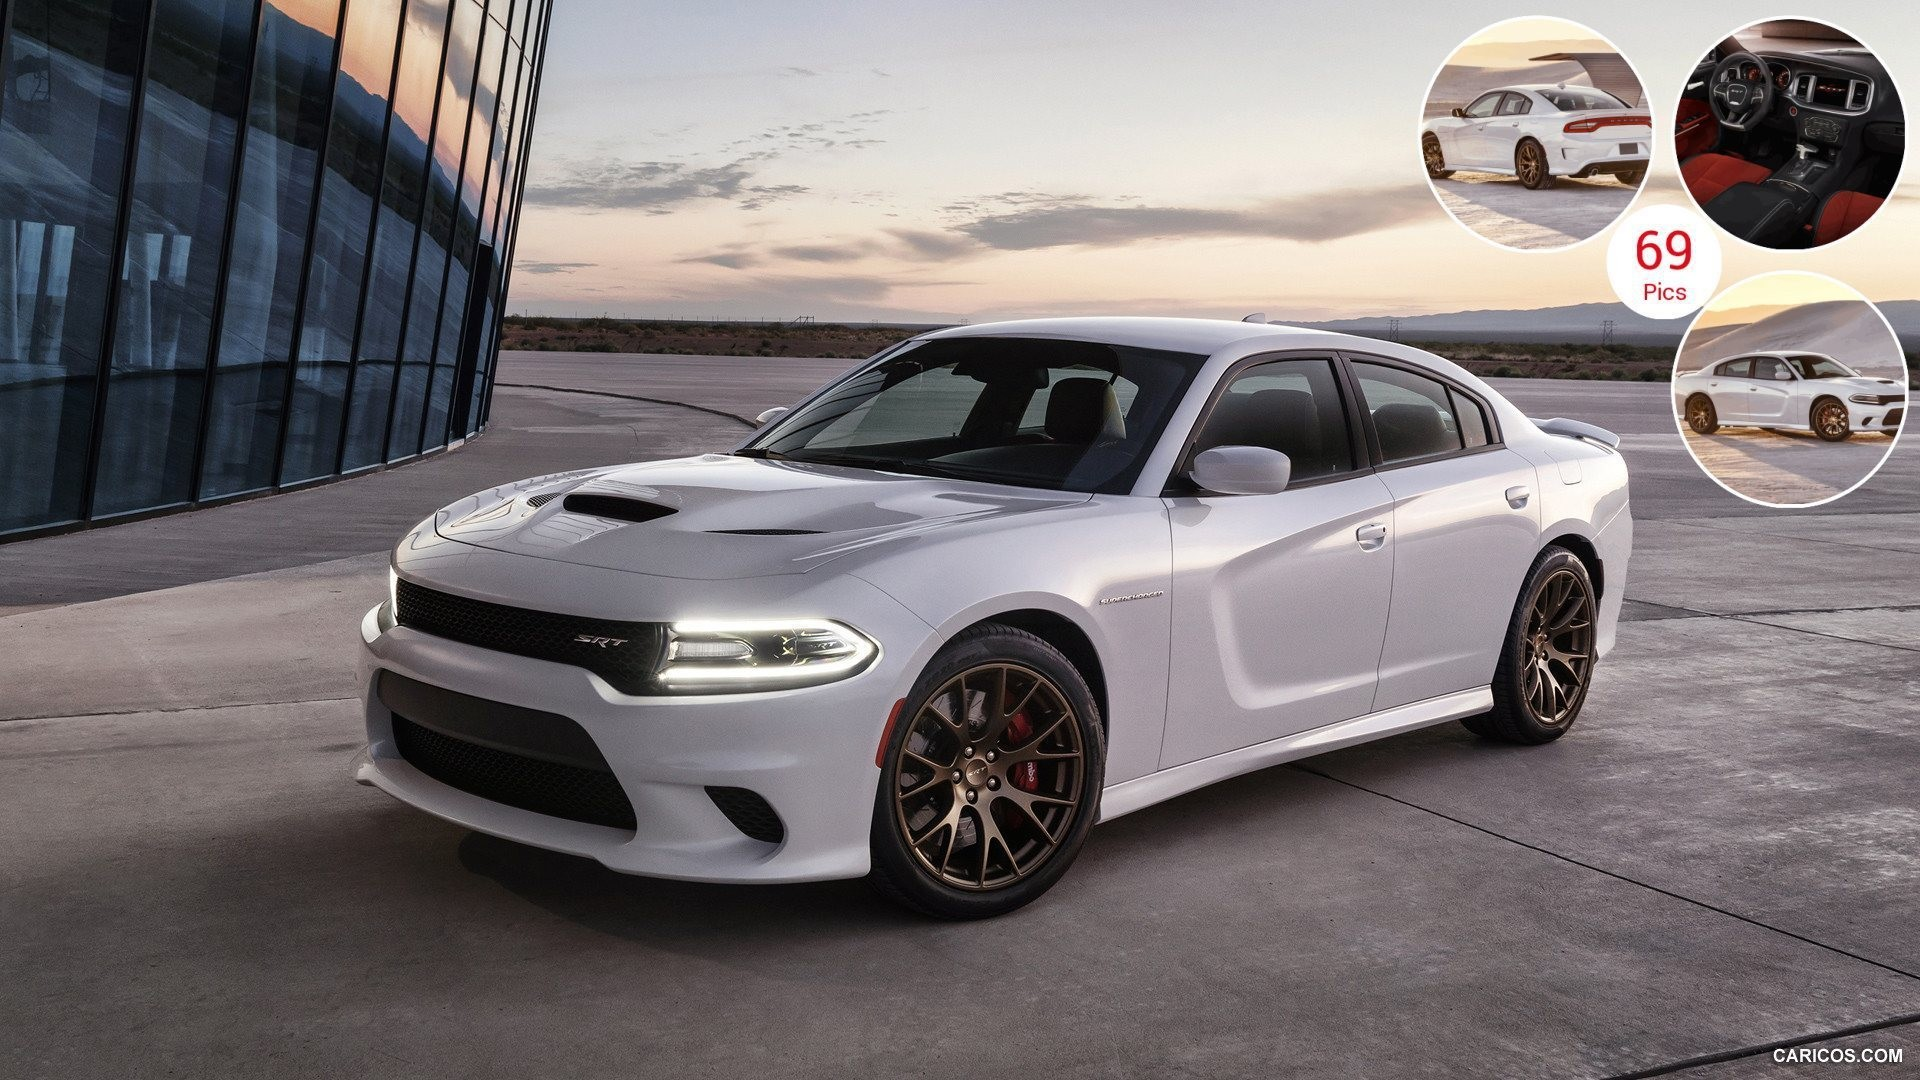 1920x1080 Dodge Charger Srt Wallpaper Hd High Resolution For Smartphone Wallpapers